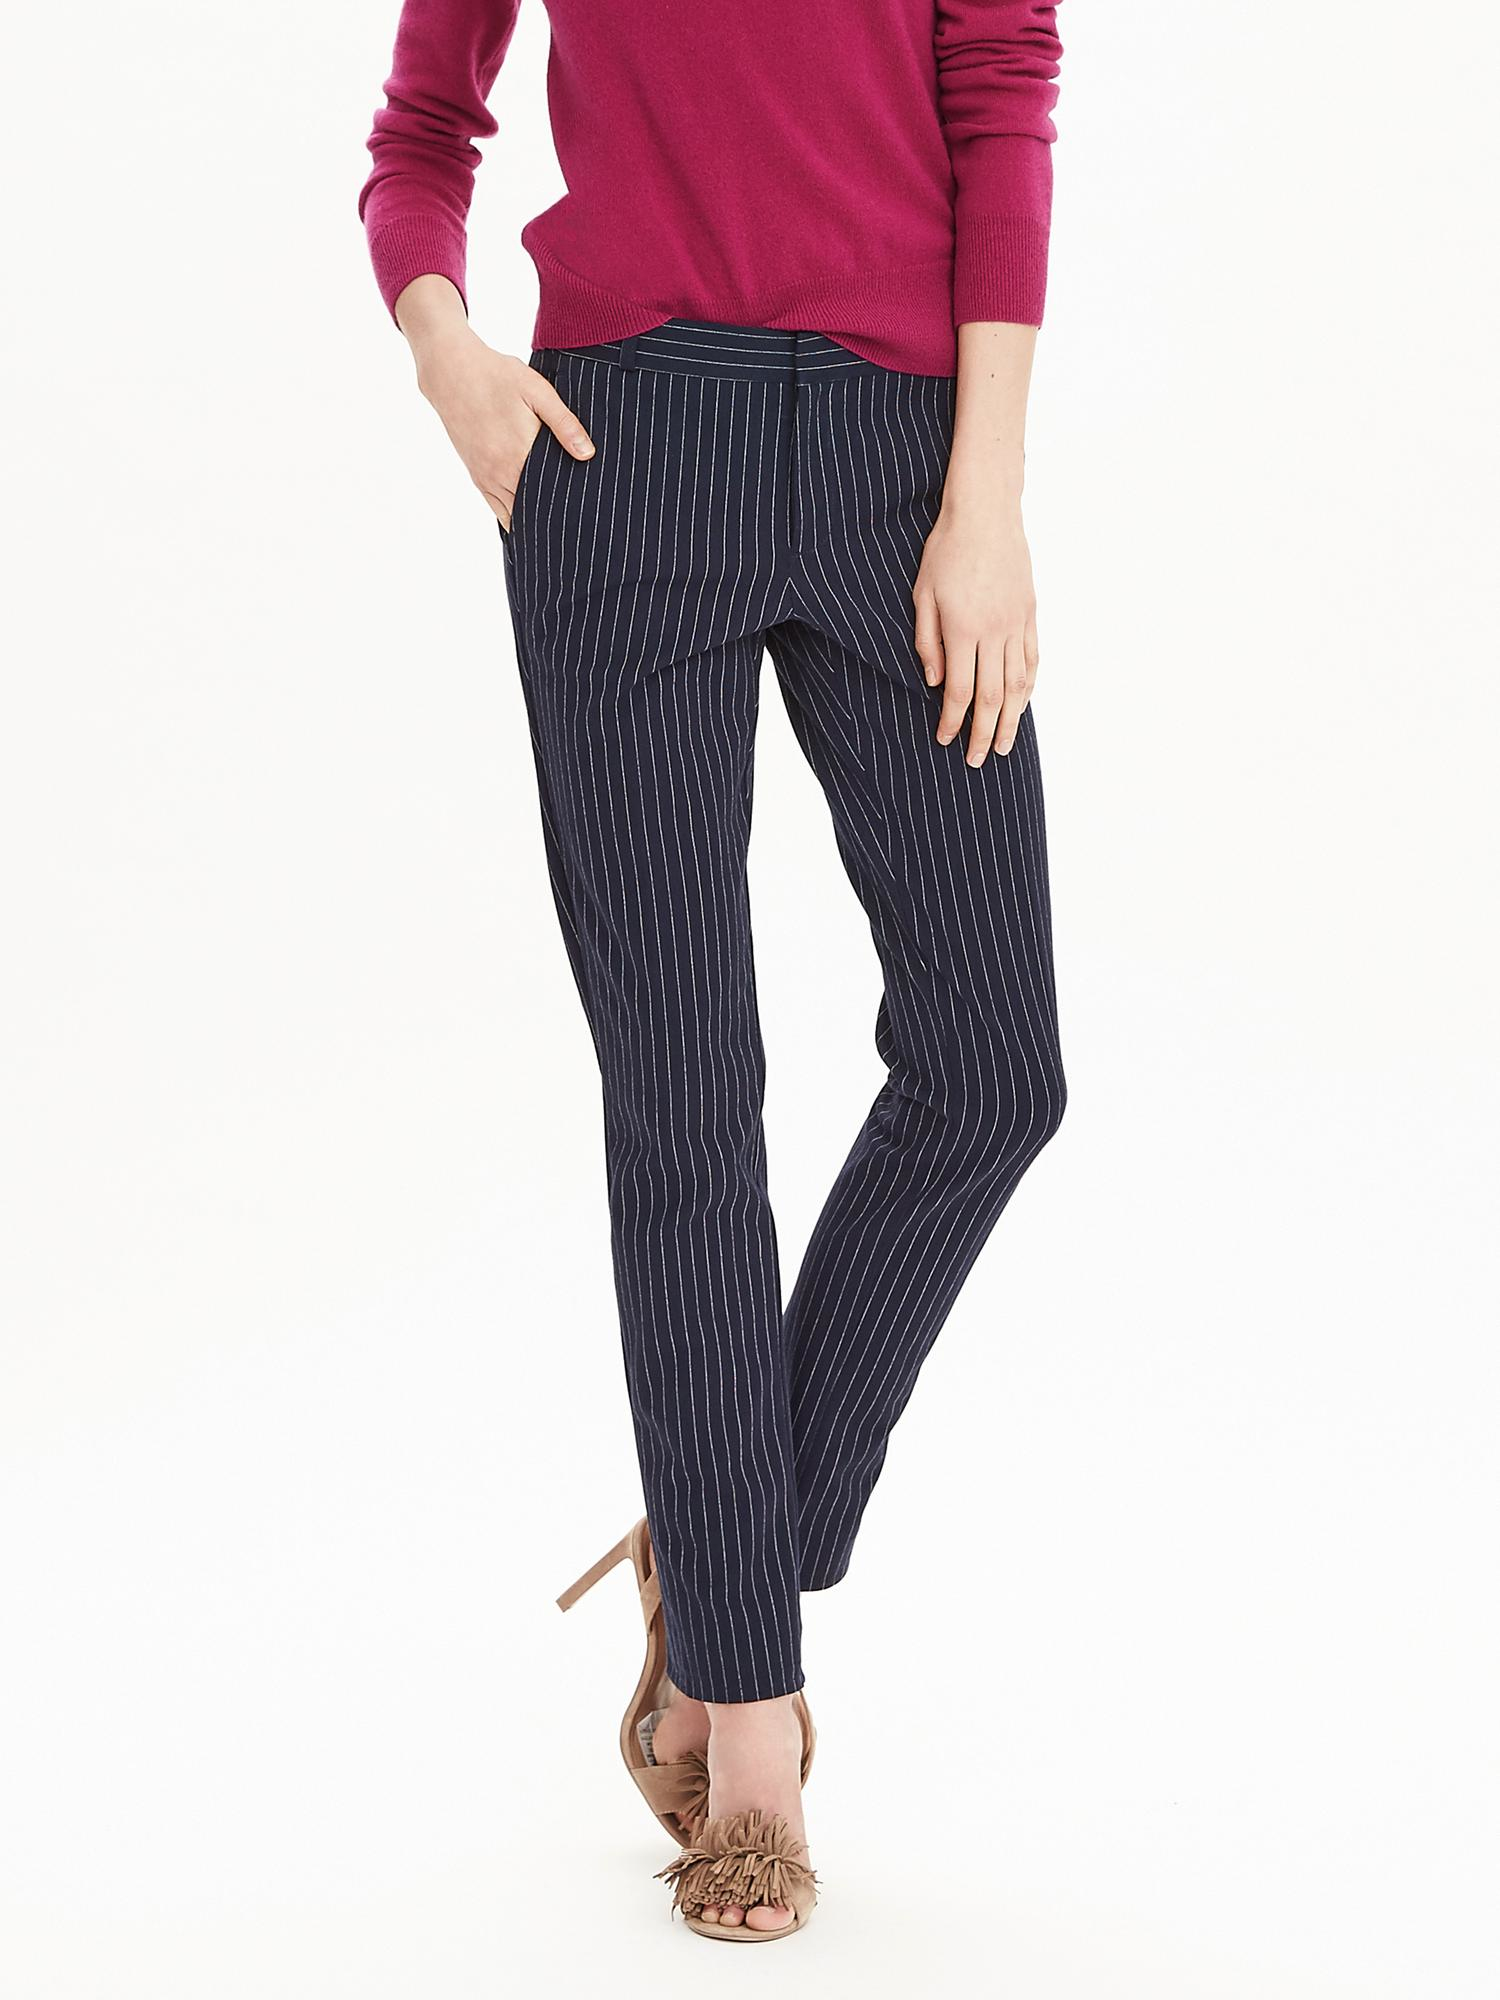 The Ryan fit is a new style of pants from Banana Republic that's described as a slim-straight silhouette that is slim through the hip and thigh. Above I'm wearing the 12 with a long inseam. Above I'm wearing the 12 with a long inseam.